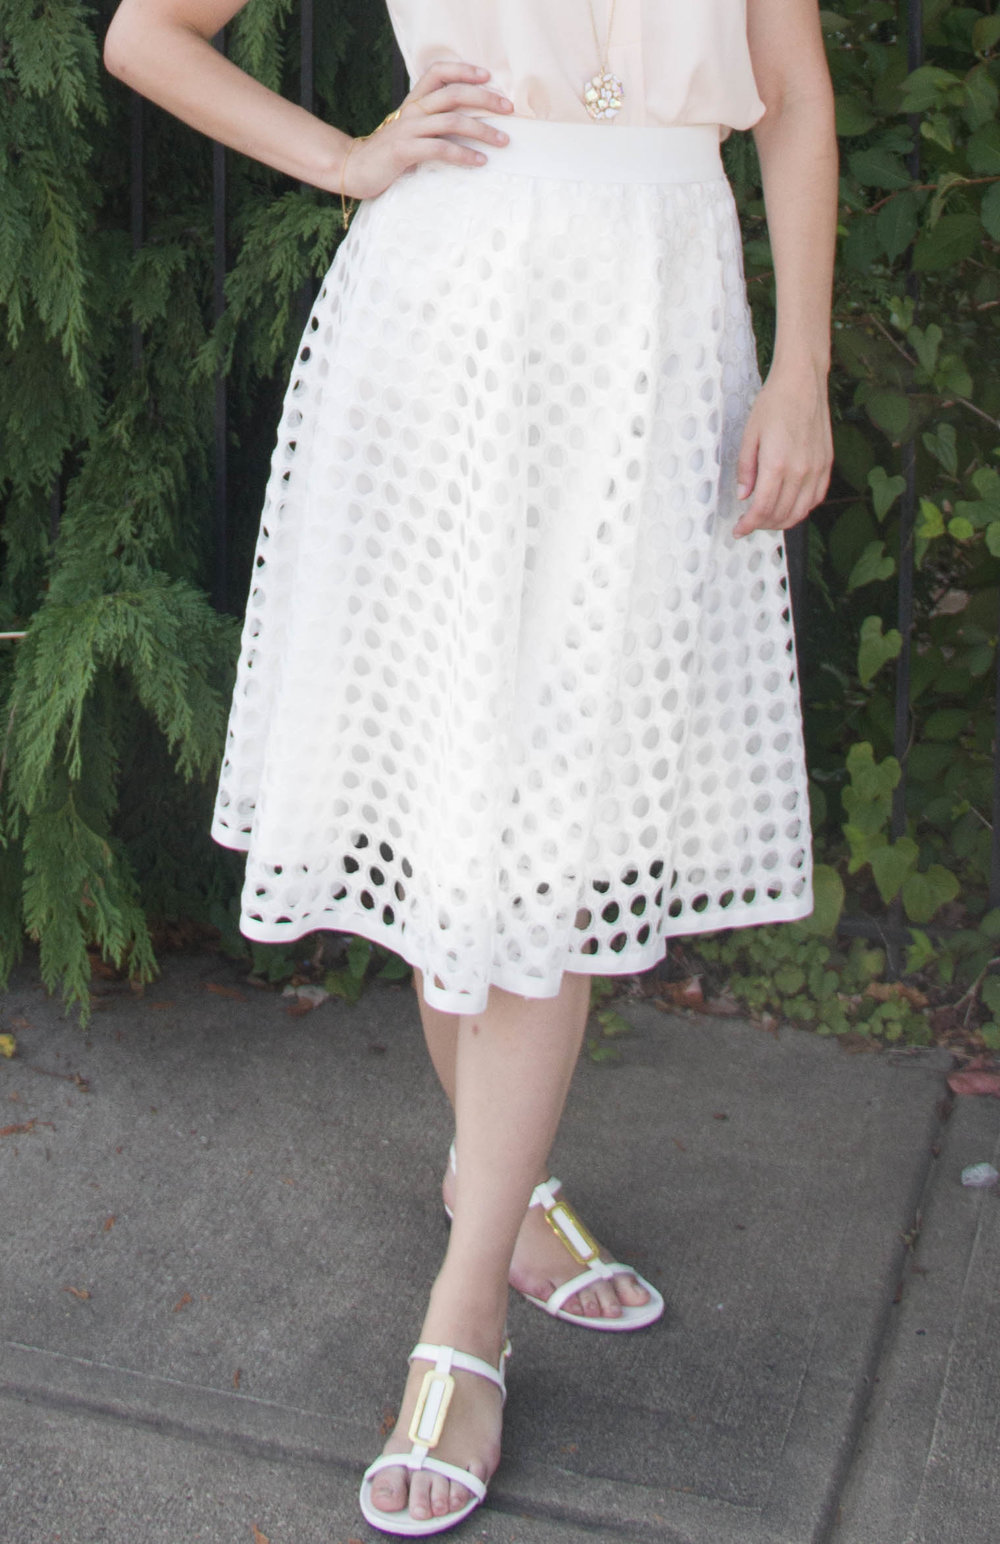 Love the skirt? You can get it here!